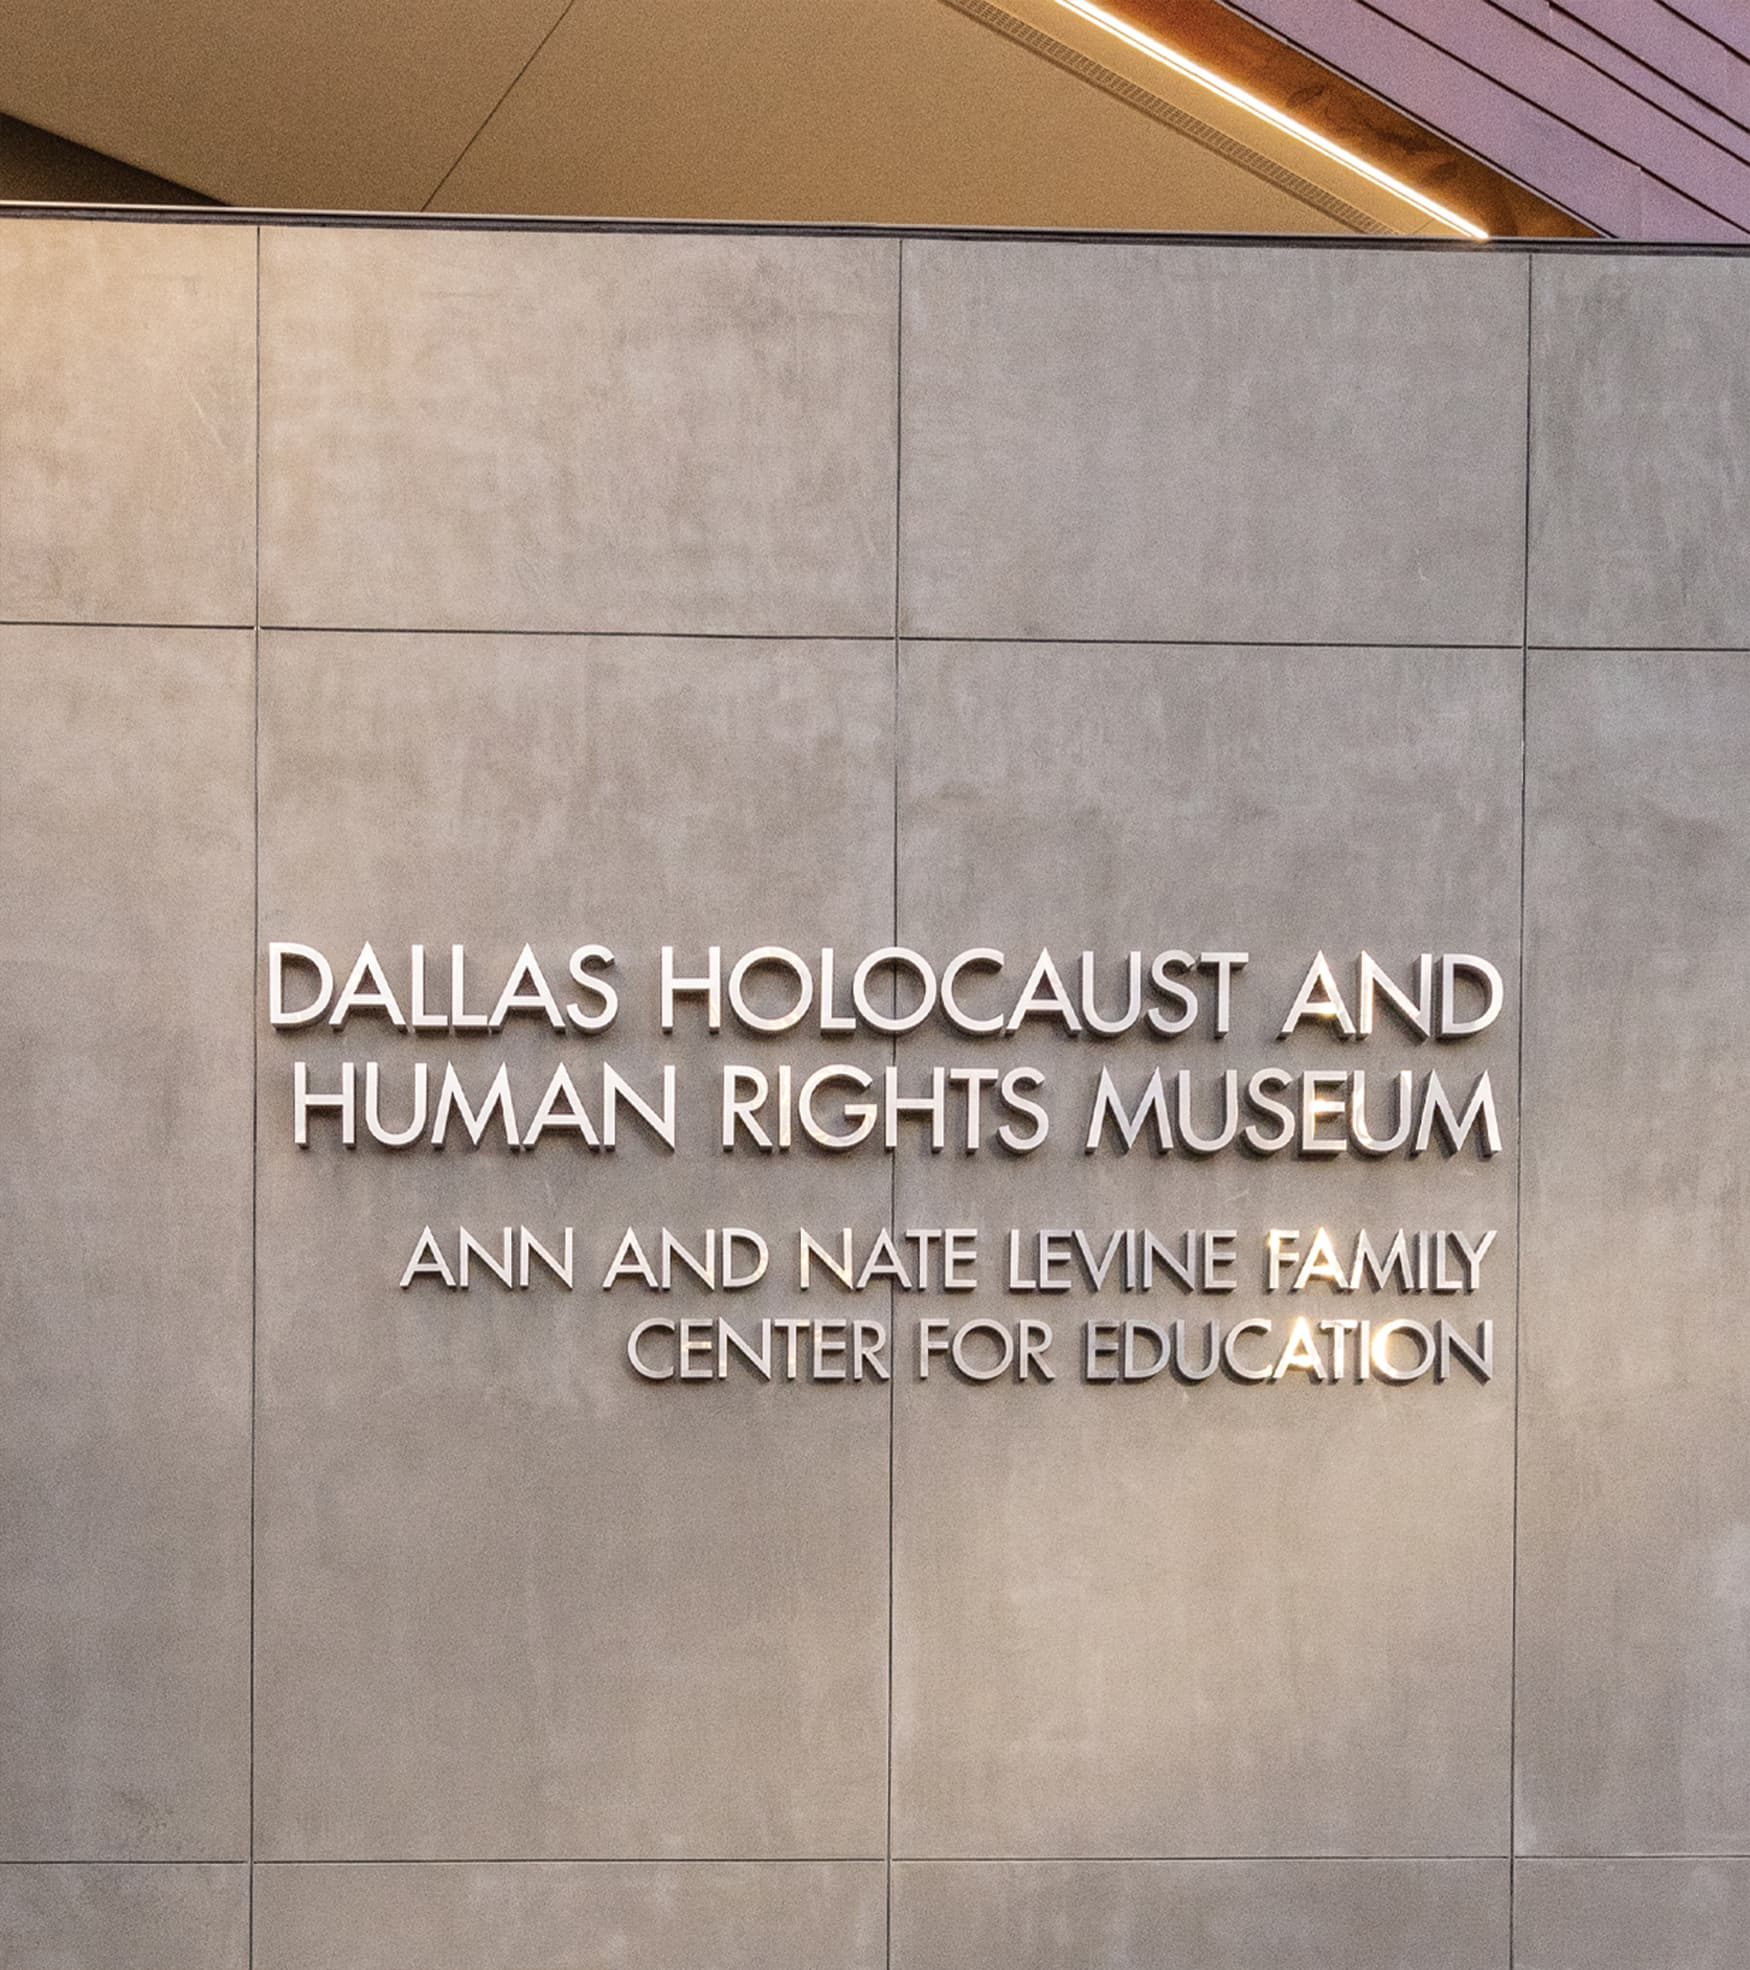 Dallas Holocaust and Human Rights Museum project identity signage